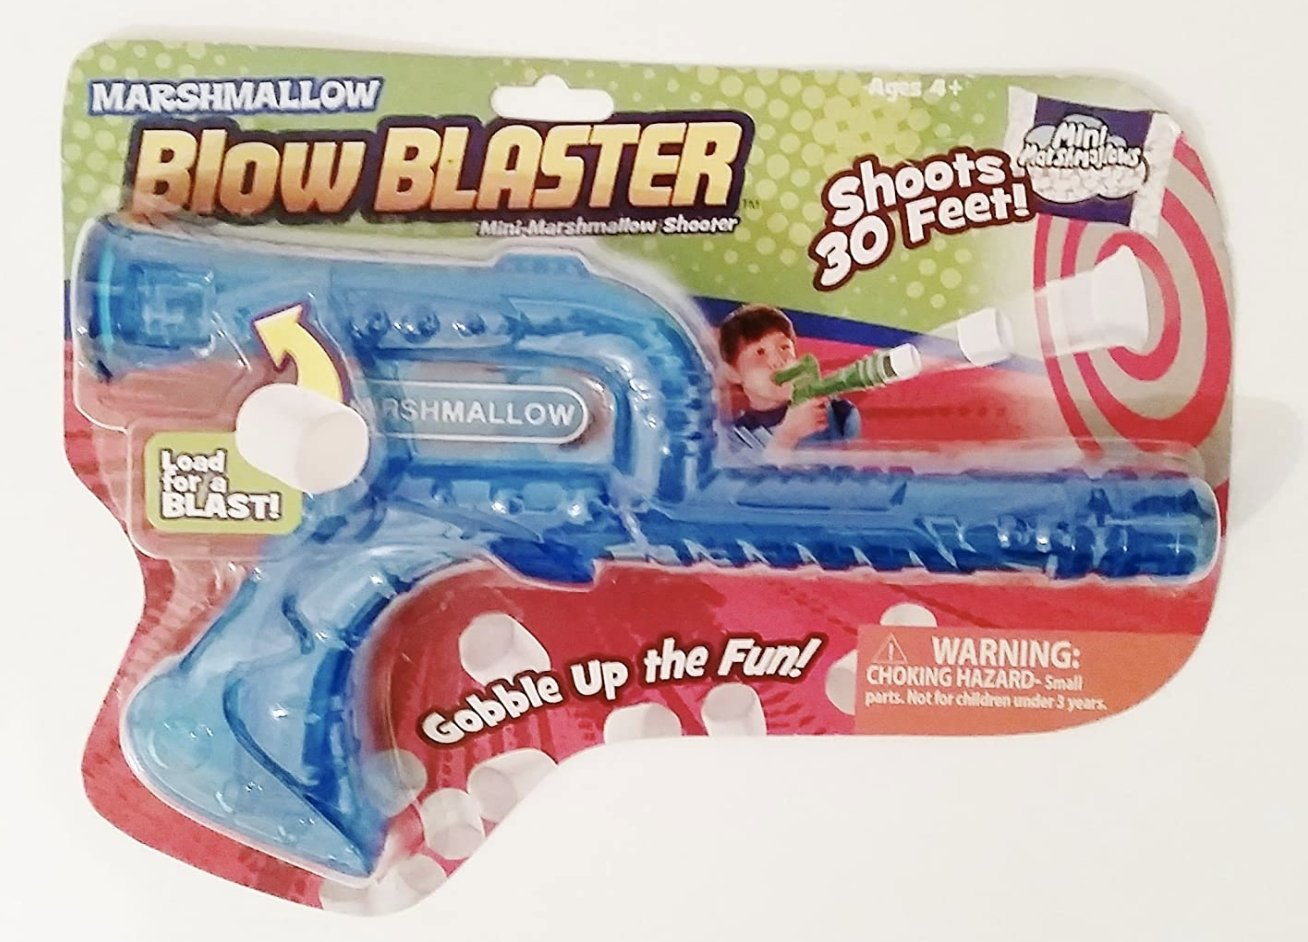 Marshmallow Blowblaster